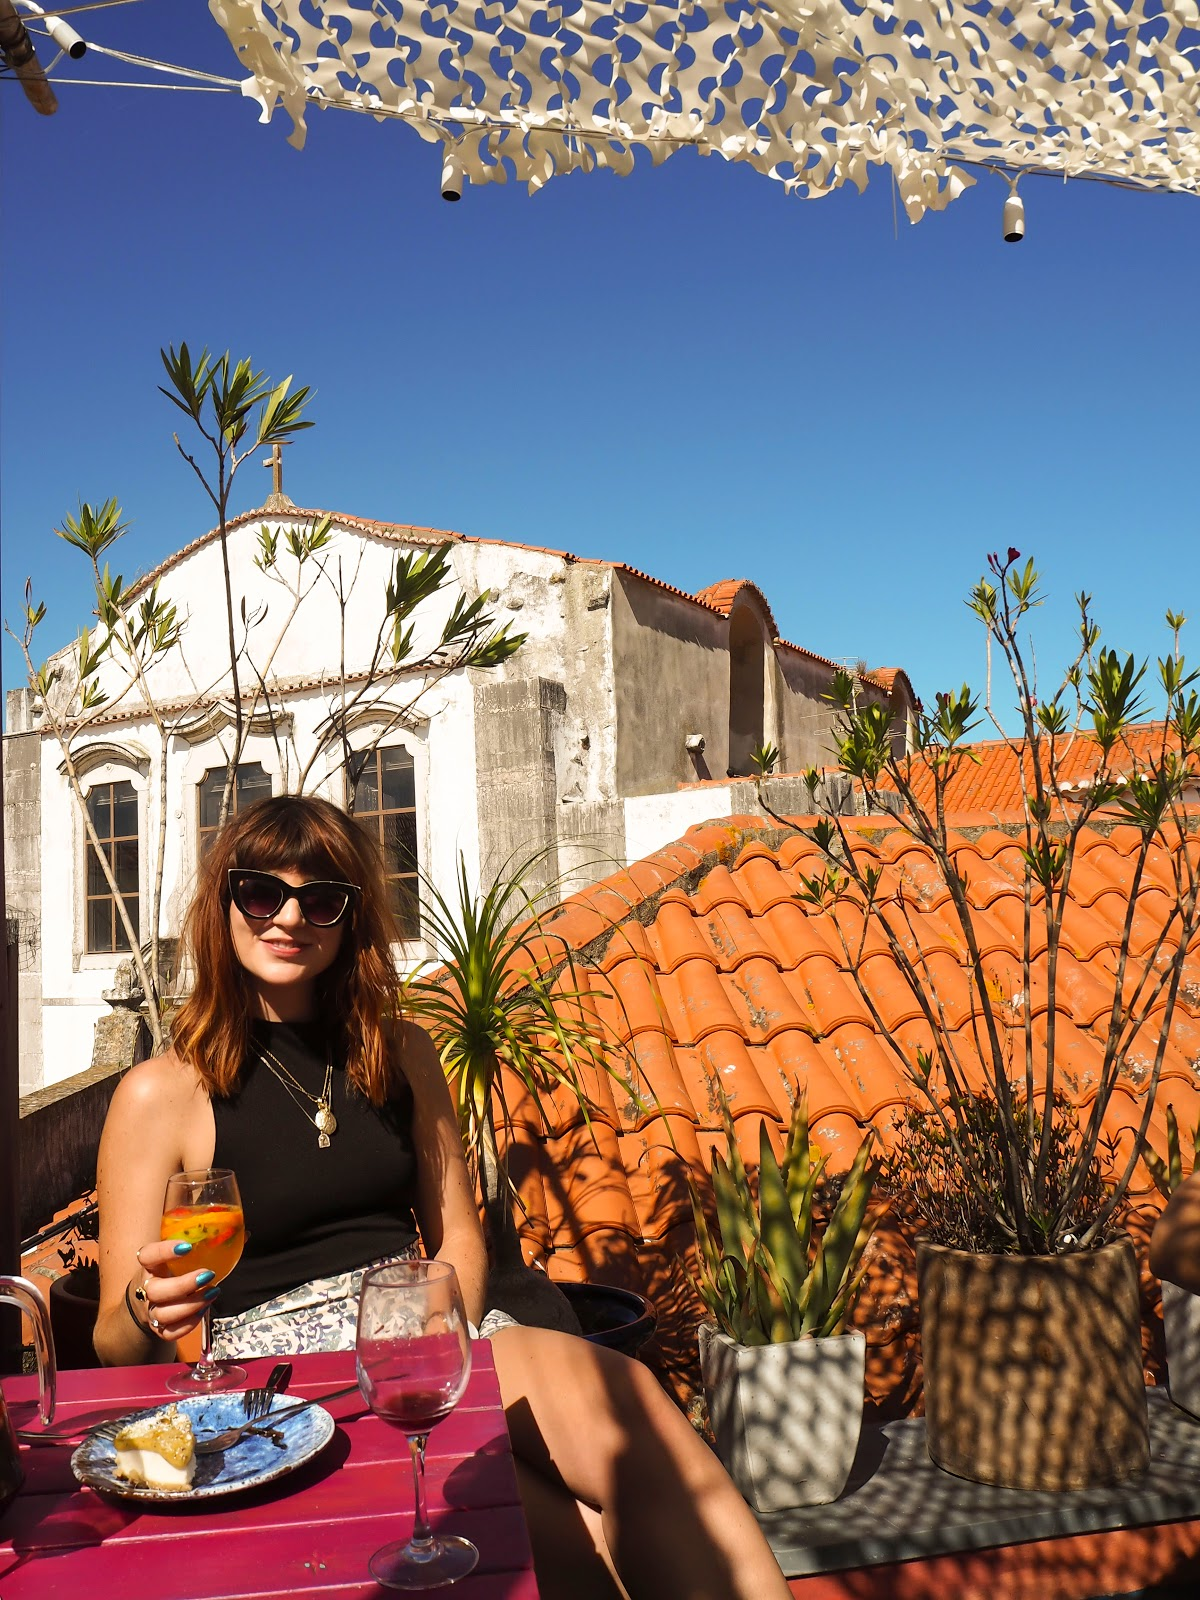 Cafe Galeria House of Wonders, Cascais